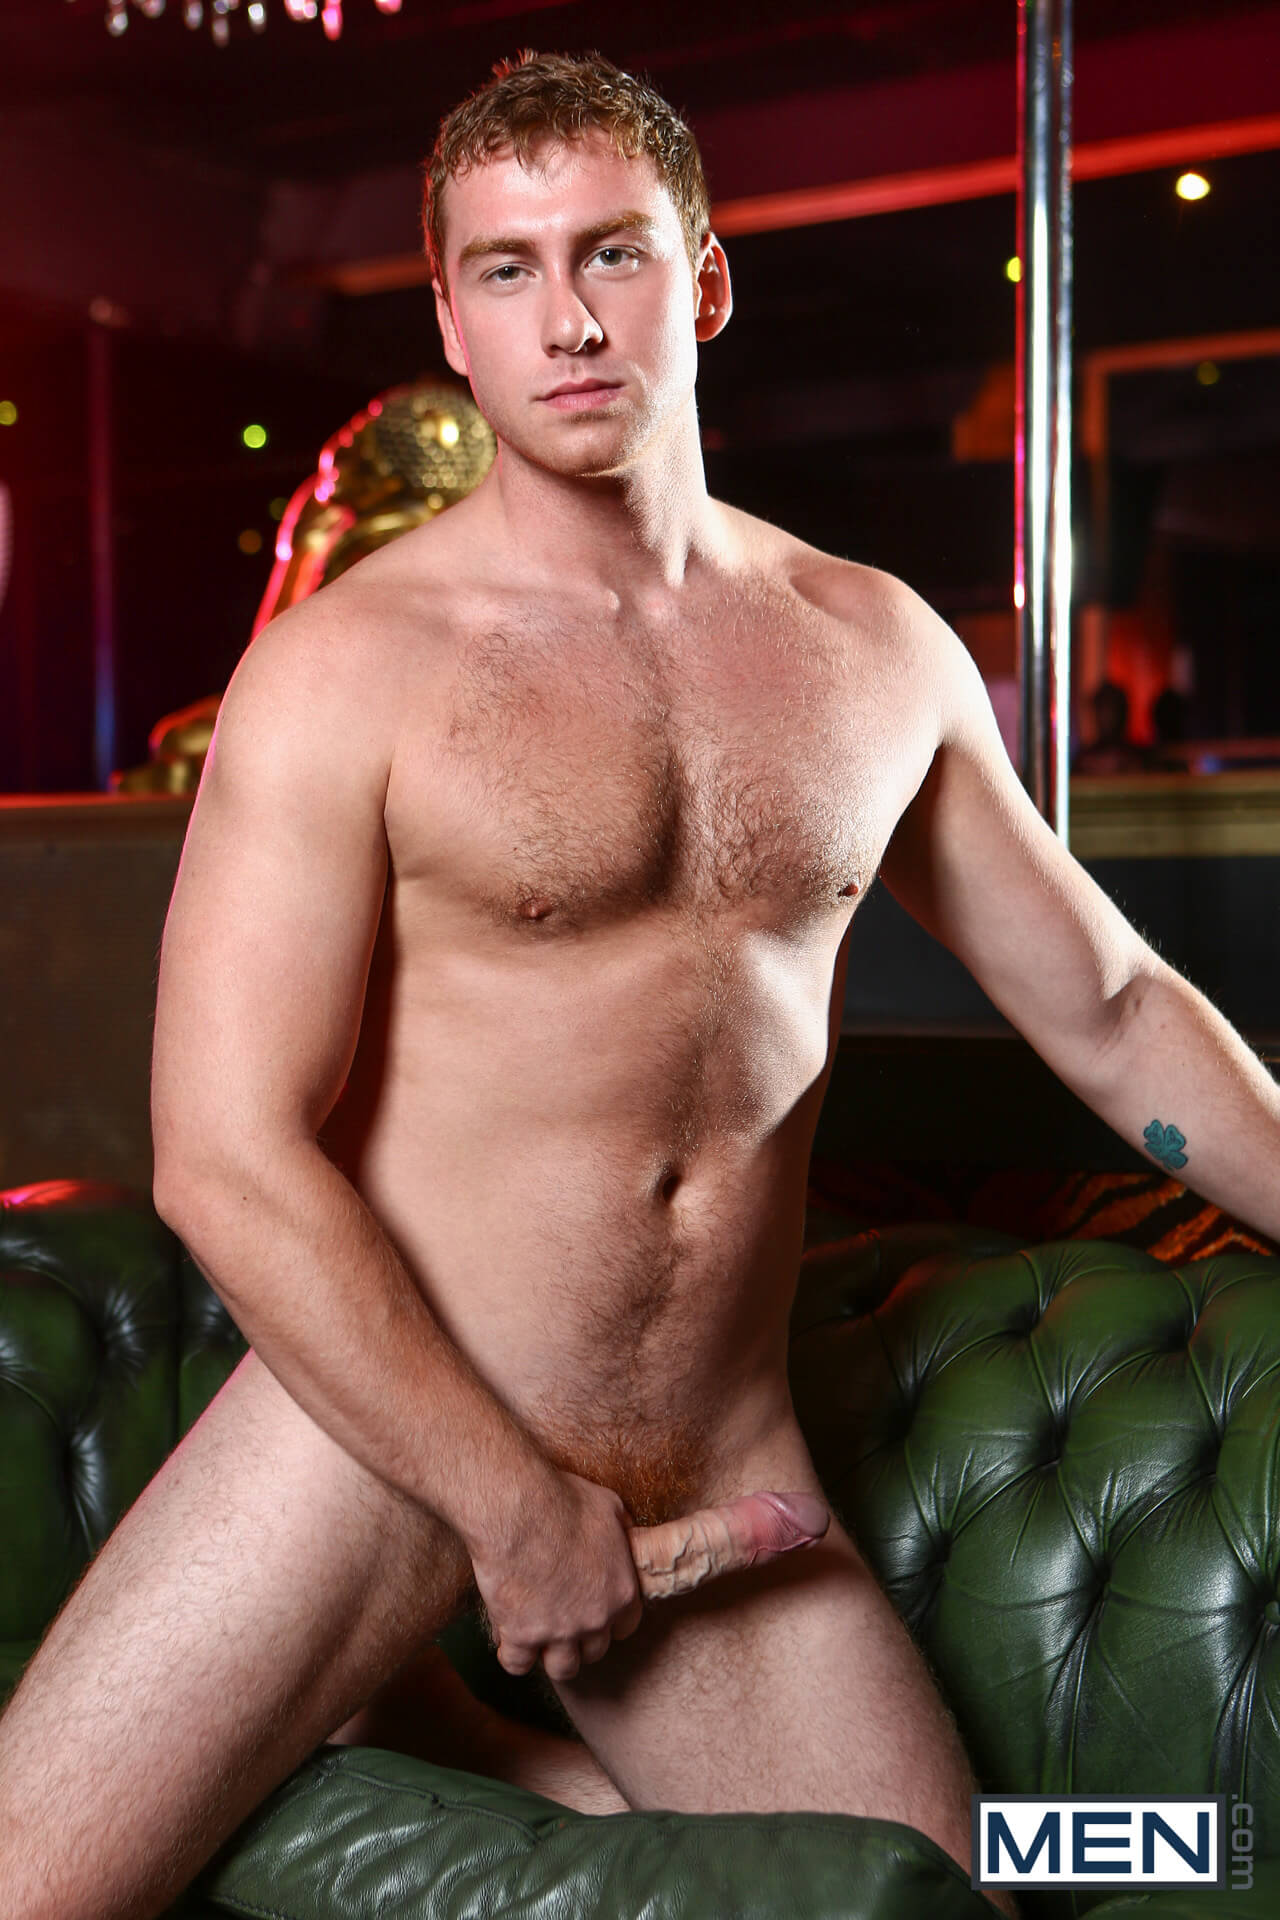 men men of uk a royal fuckfest part 1 connor maguire theo reid gay porn blog image 8